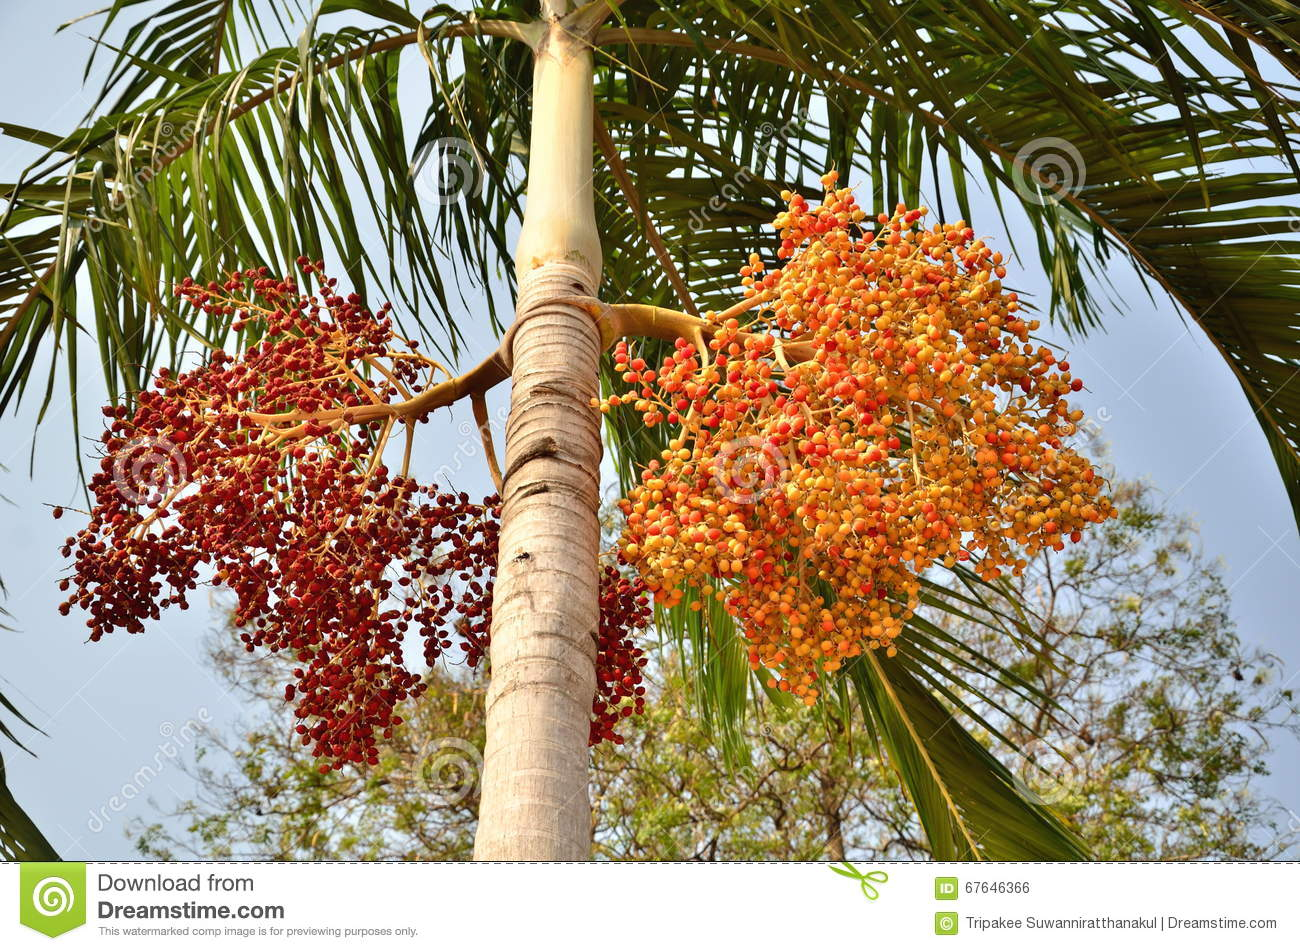 Download Plam plant from asia stock photo. Image of natural, color - 67646366